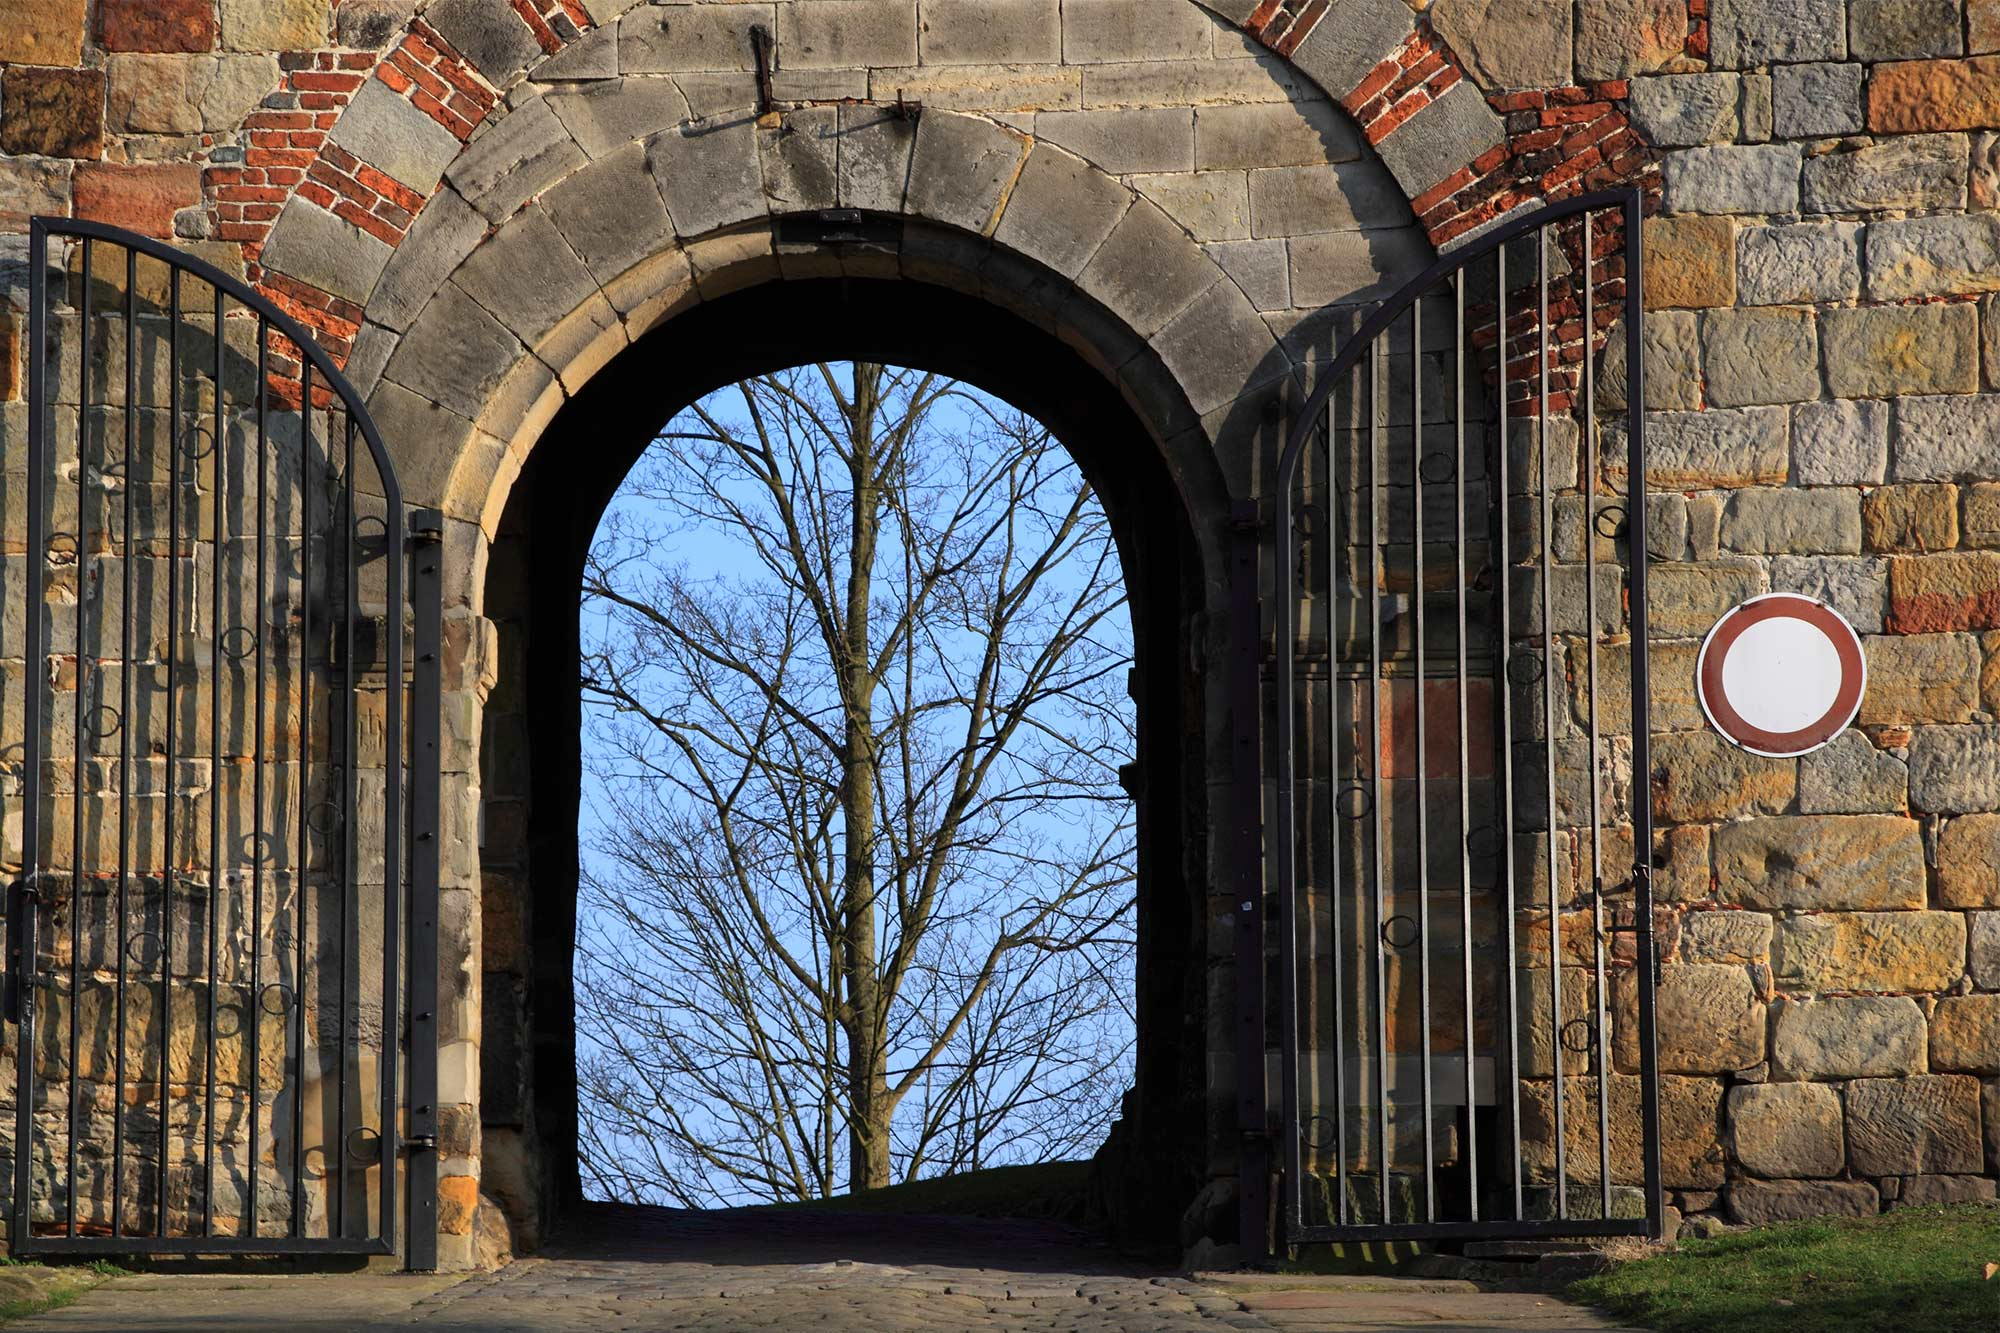 Lower gate at the driveway to Bentheim Castle © Thomas Wallmeyer